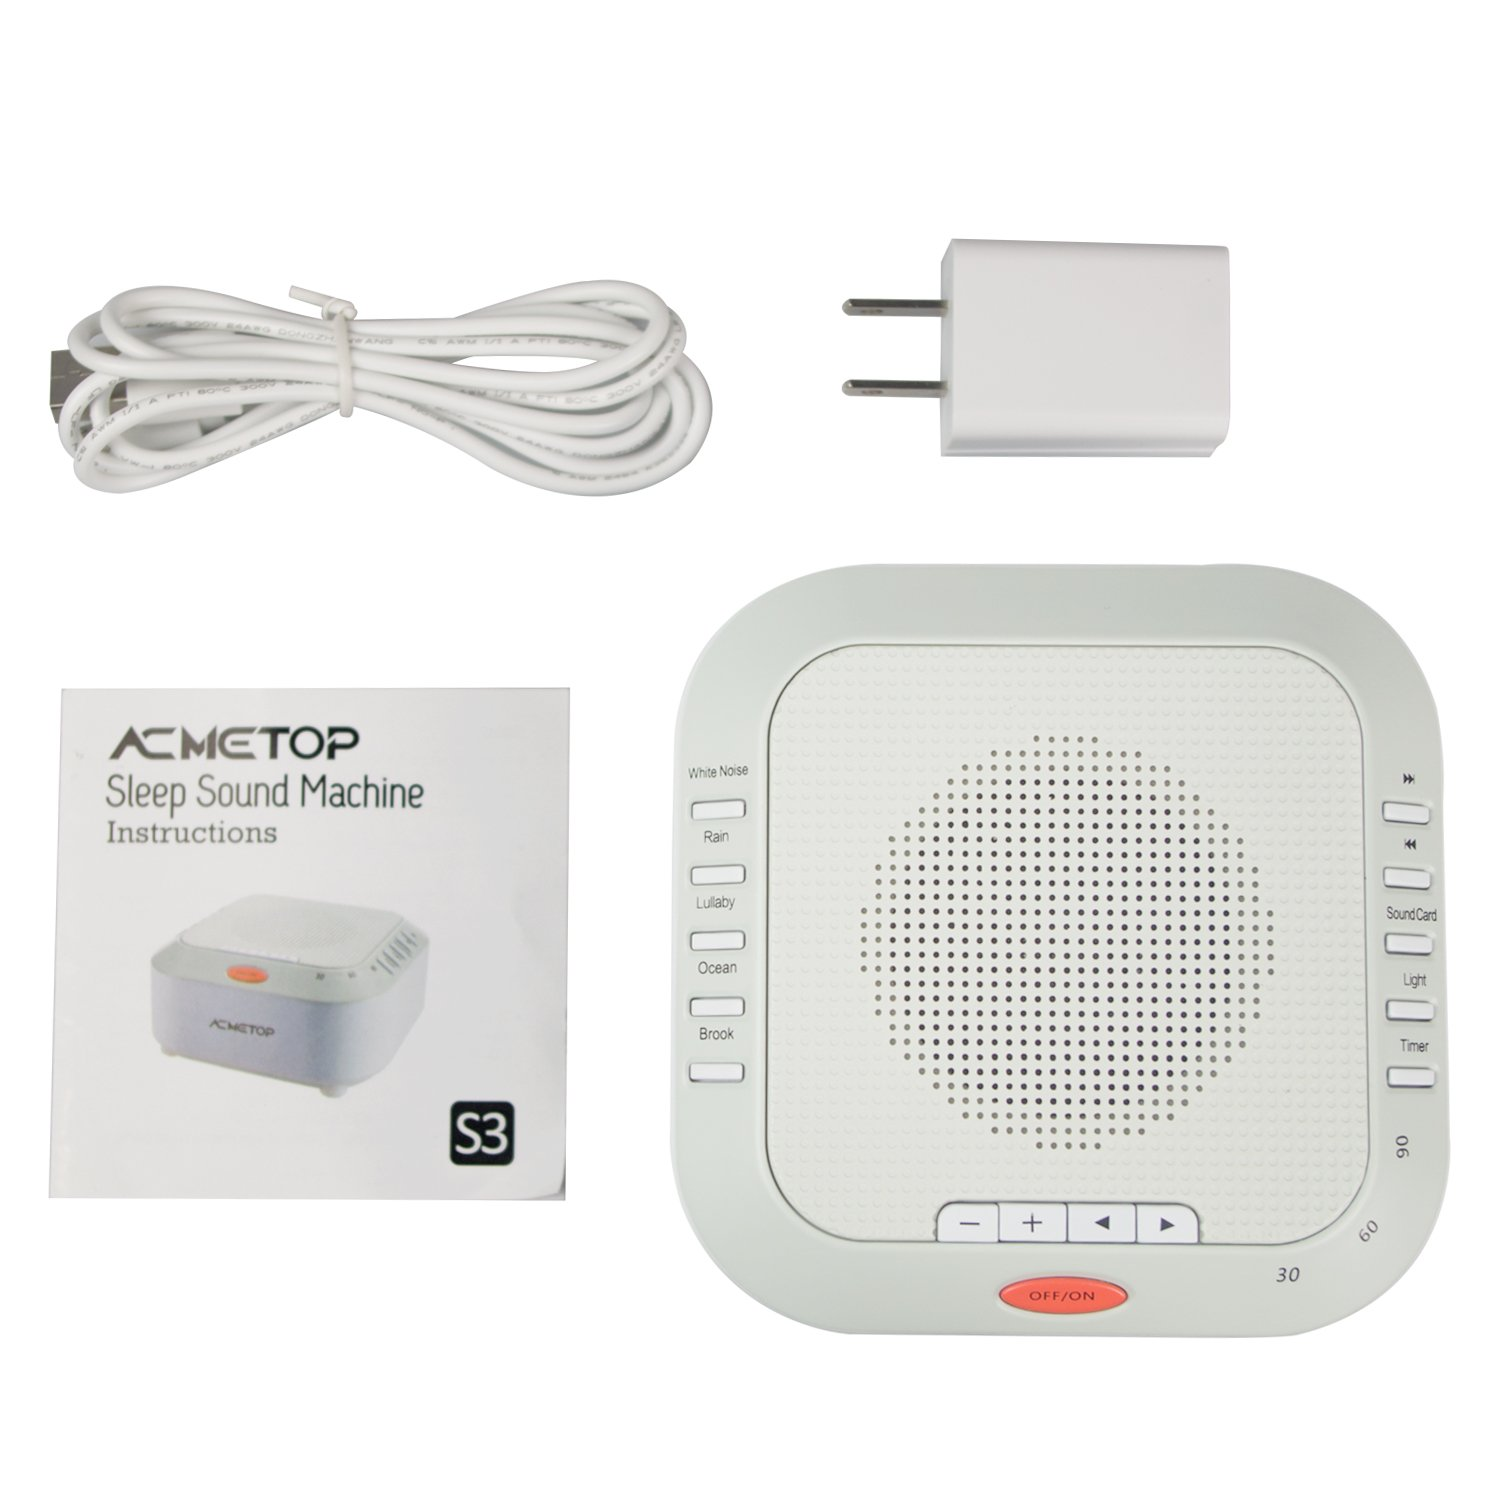 [New Upgrade] Rechargeable White Noise Machine, ACMETOP Portable Sleep Therapy Sound Machine for Baby, Kids, Home, Travel with High Fidelity Nature Sound, Soft Night Light by ACMETOP (Image #9)